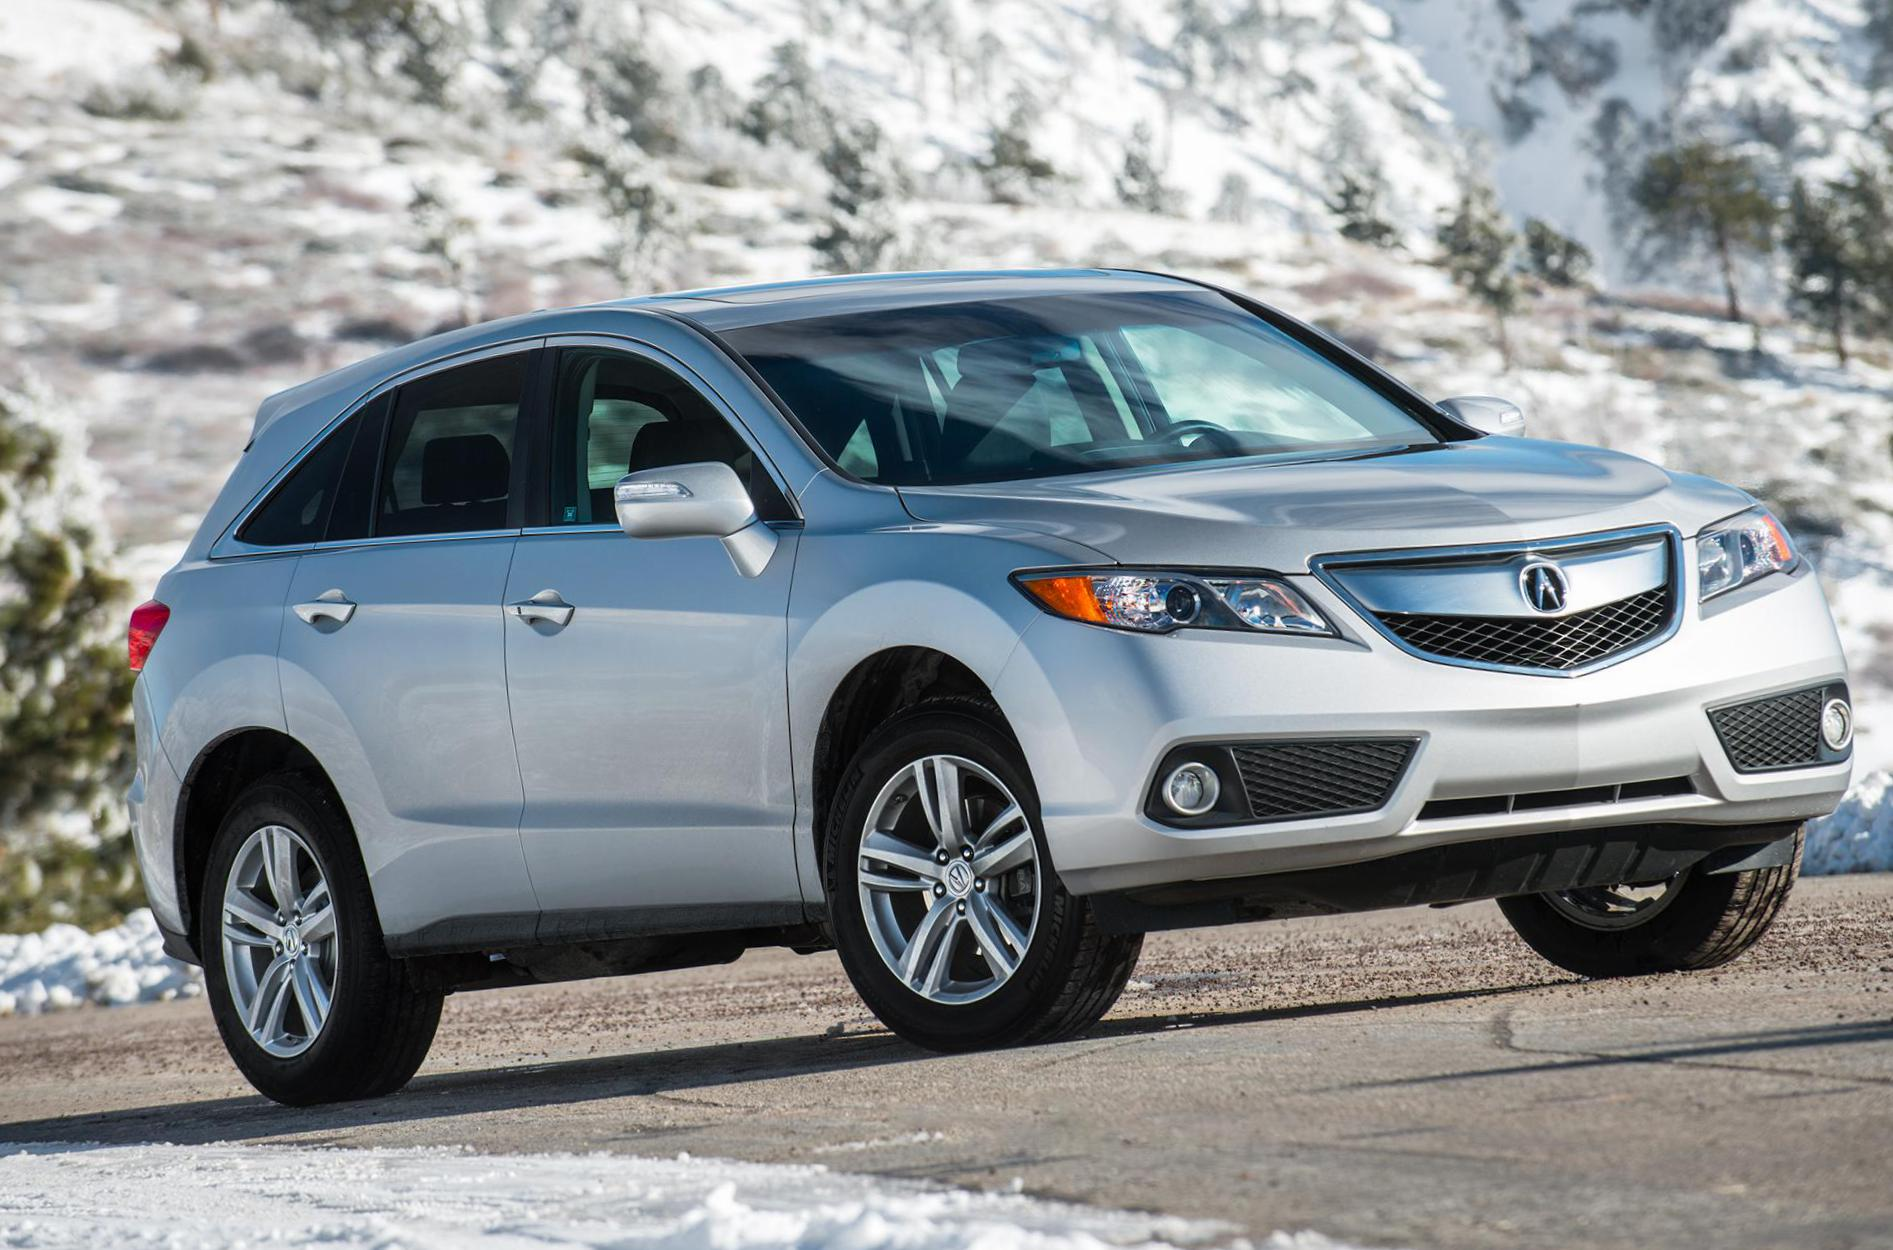 RDX Acura approved sedan